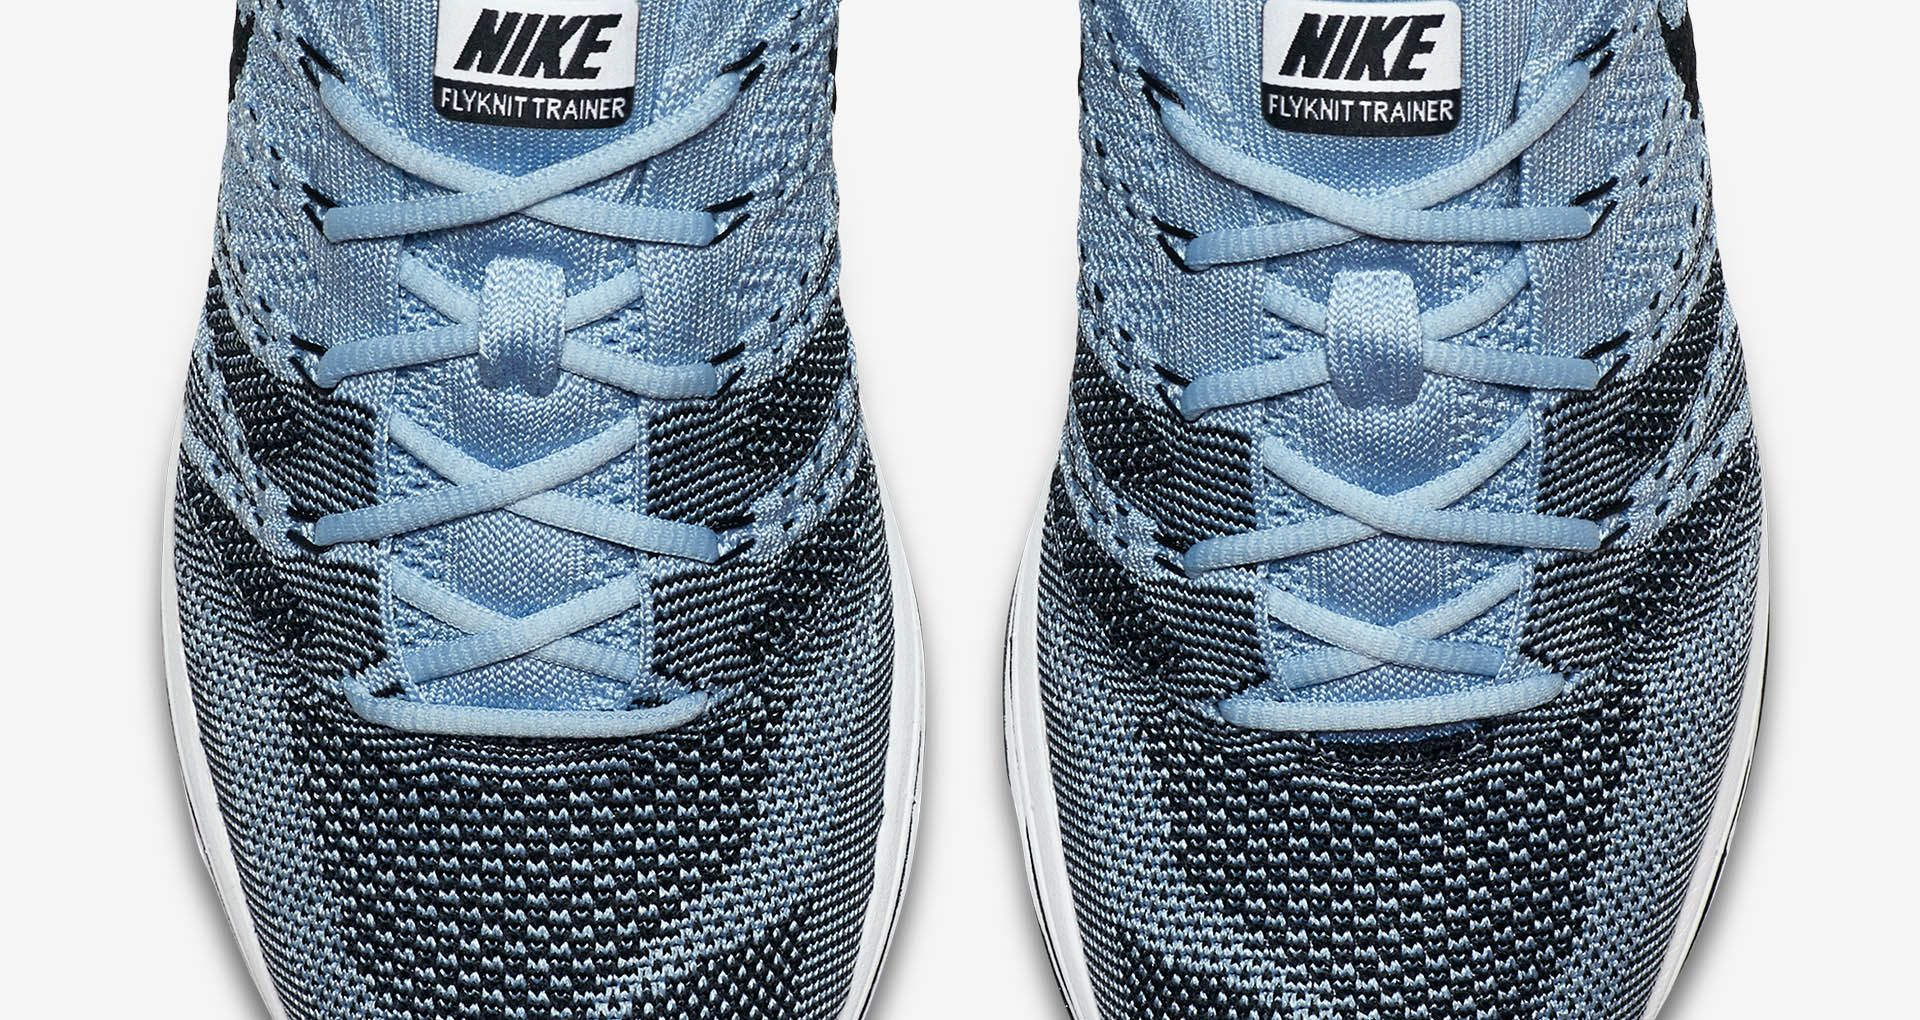 6b7a886892ff Nike Flyknit Trainer  Cirrus Blue   Black  Release Date. Nike⁠+ SNKRS